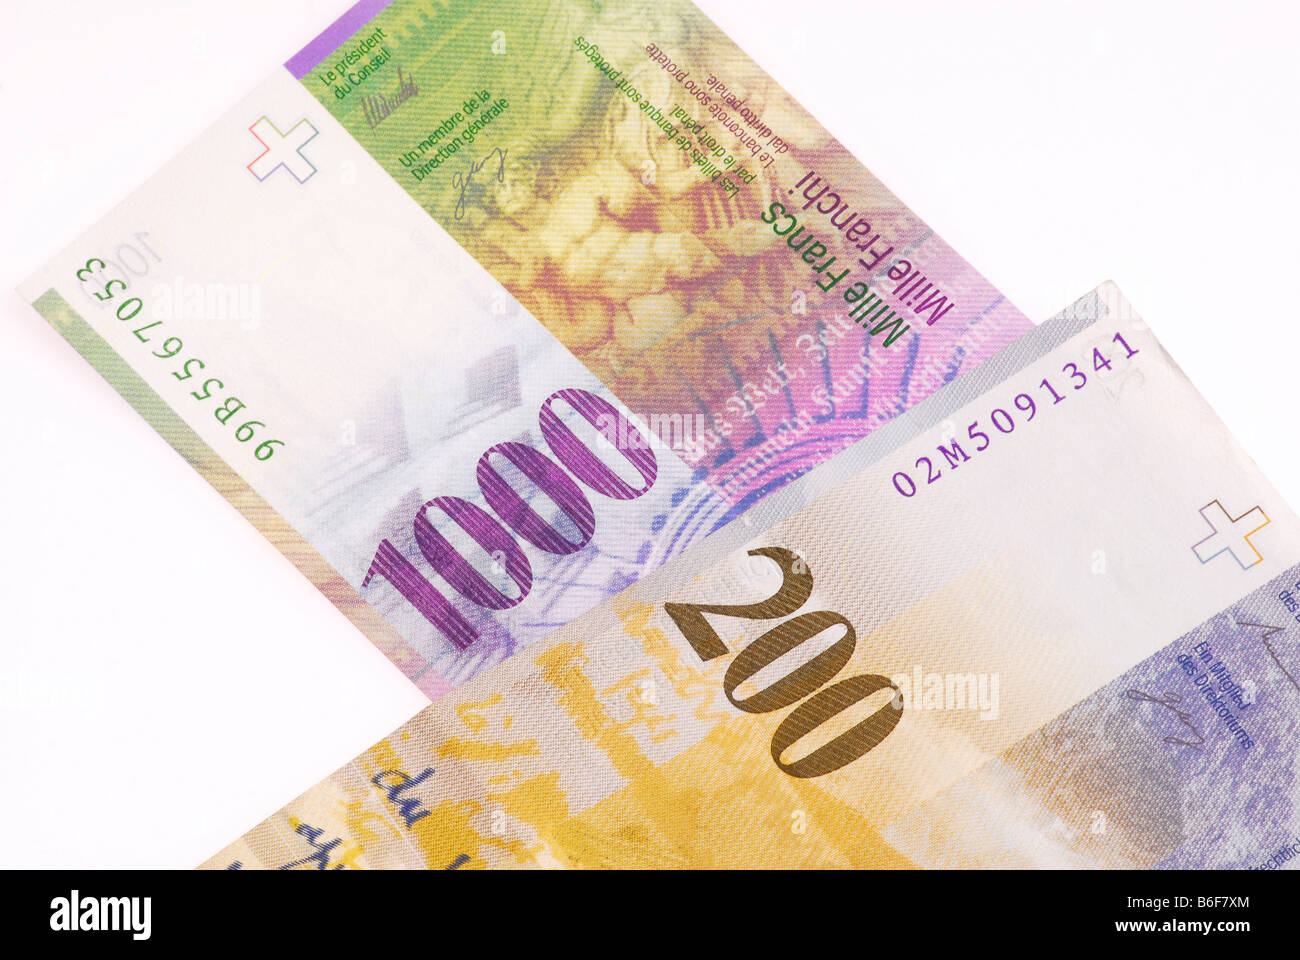 Thousand and two hundred Franc Swiss banknotes - Stock Image